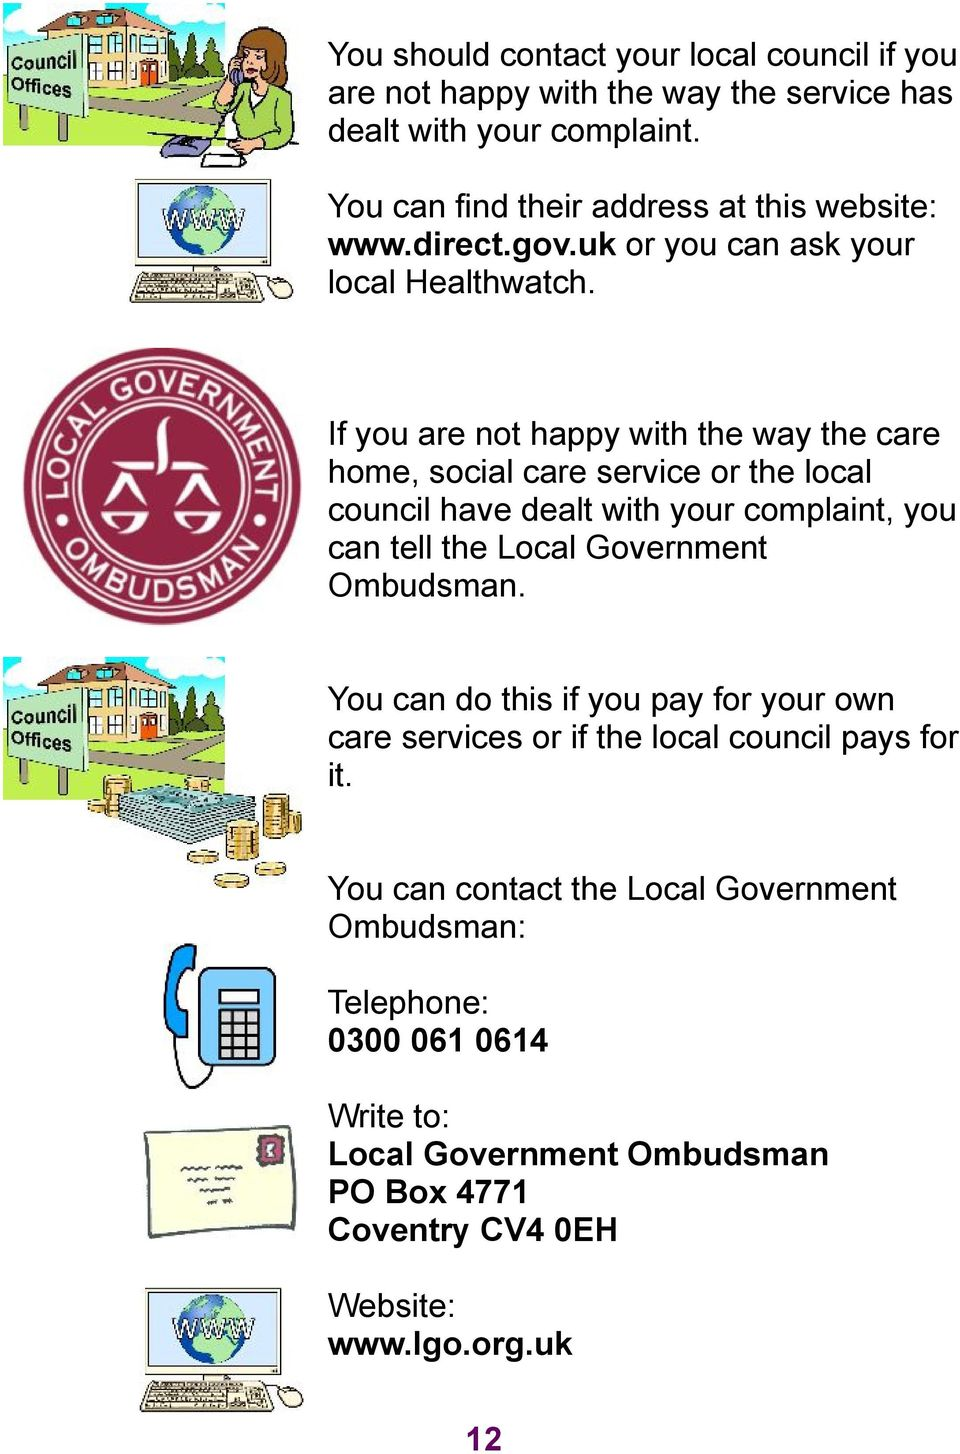 If you are not happy with the way the care home, social care service or the local council have dealt with your complaint, you can tell the Local Government